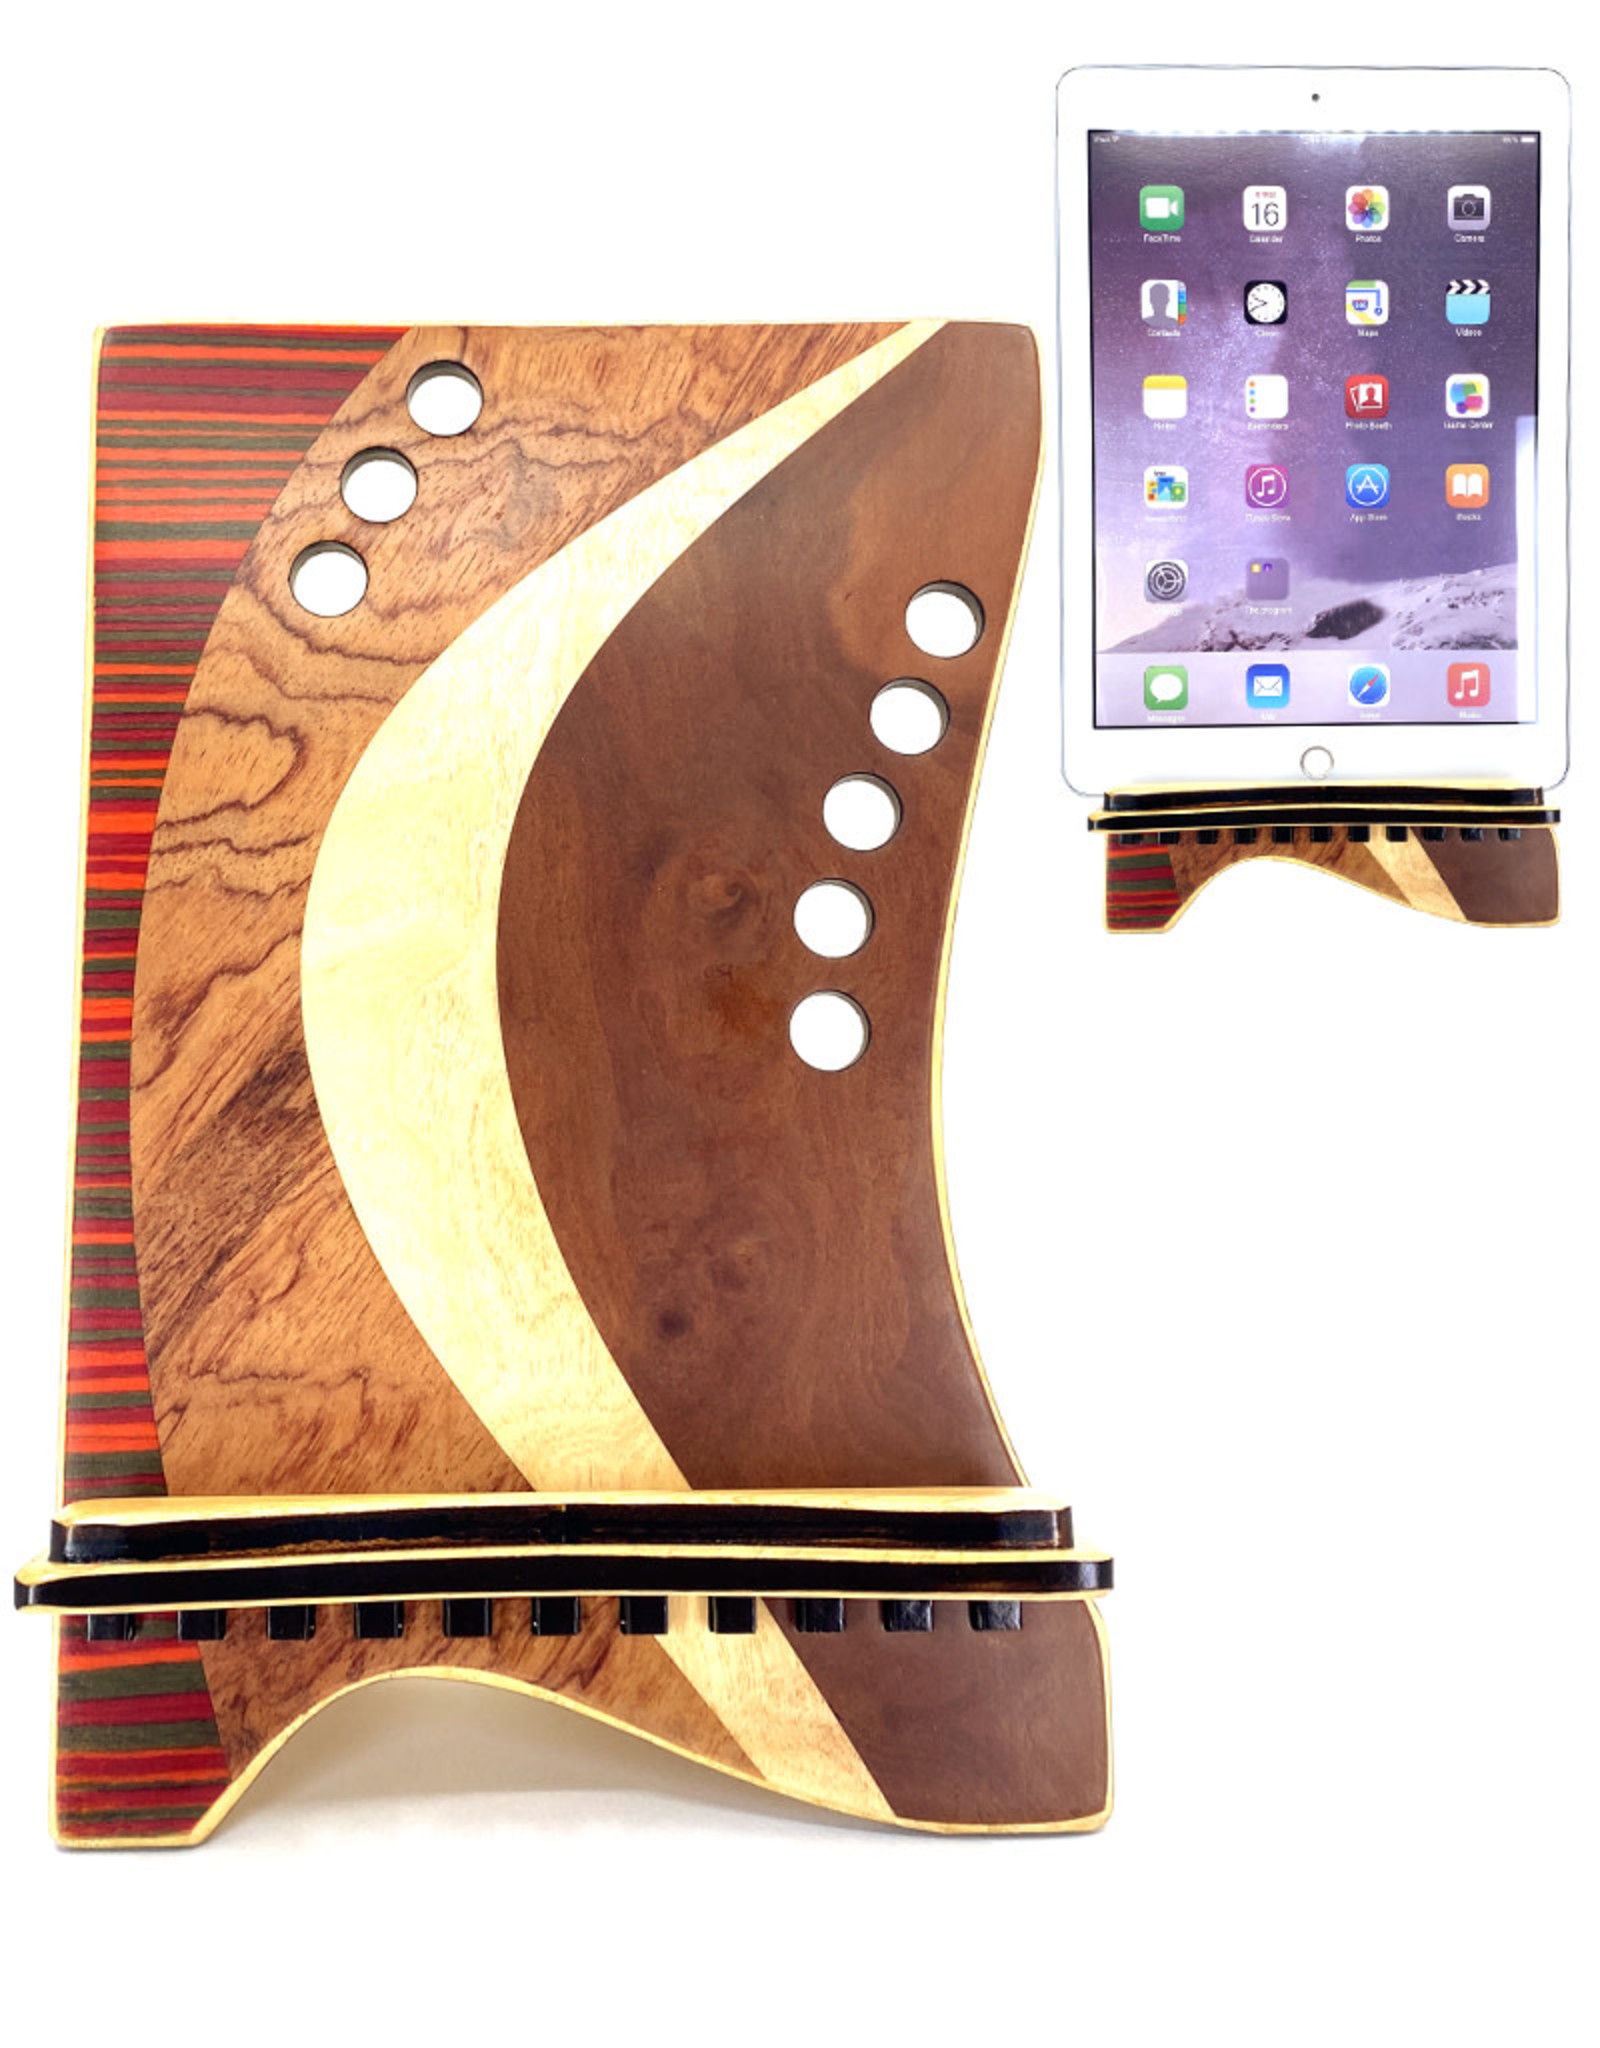 LOST ART WOODWORKS RED STRIPED MARQUETRY INLAID TABLET STAND